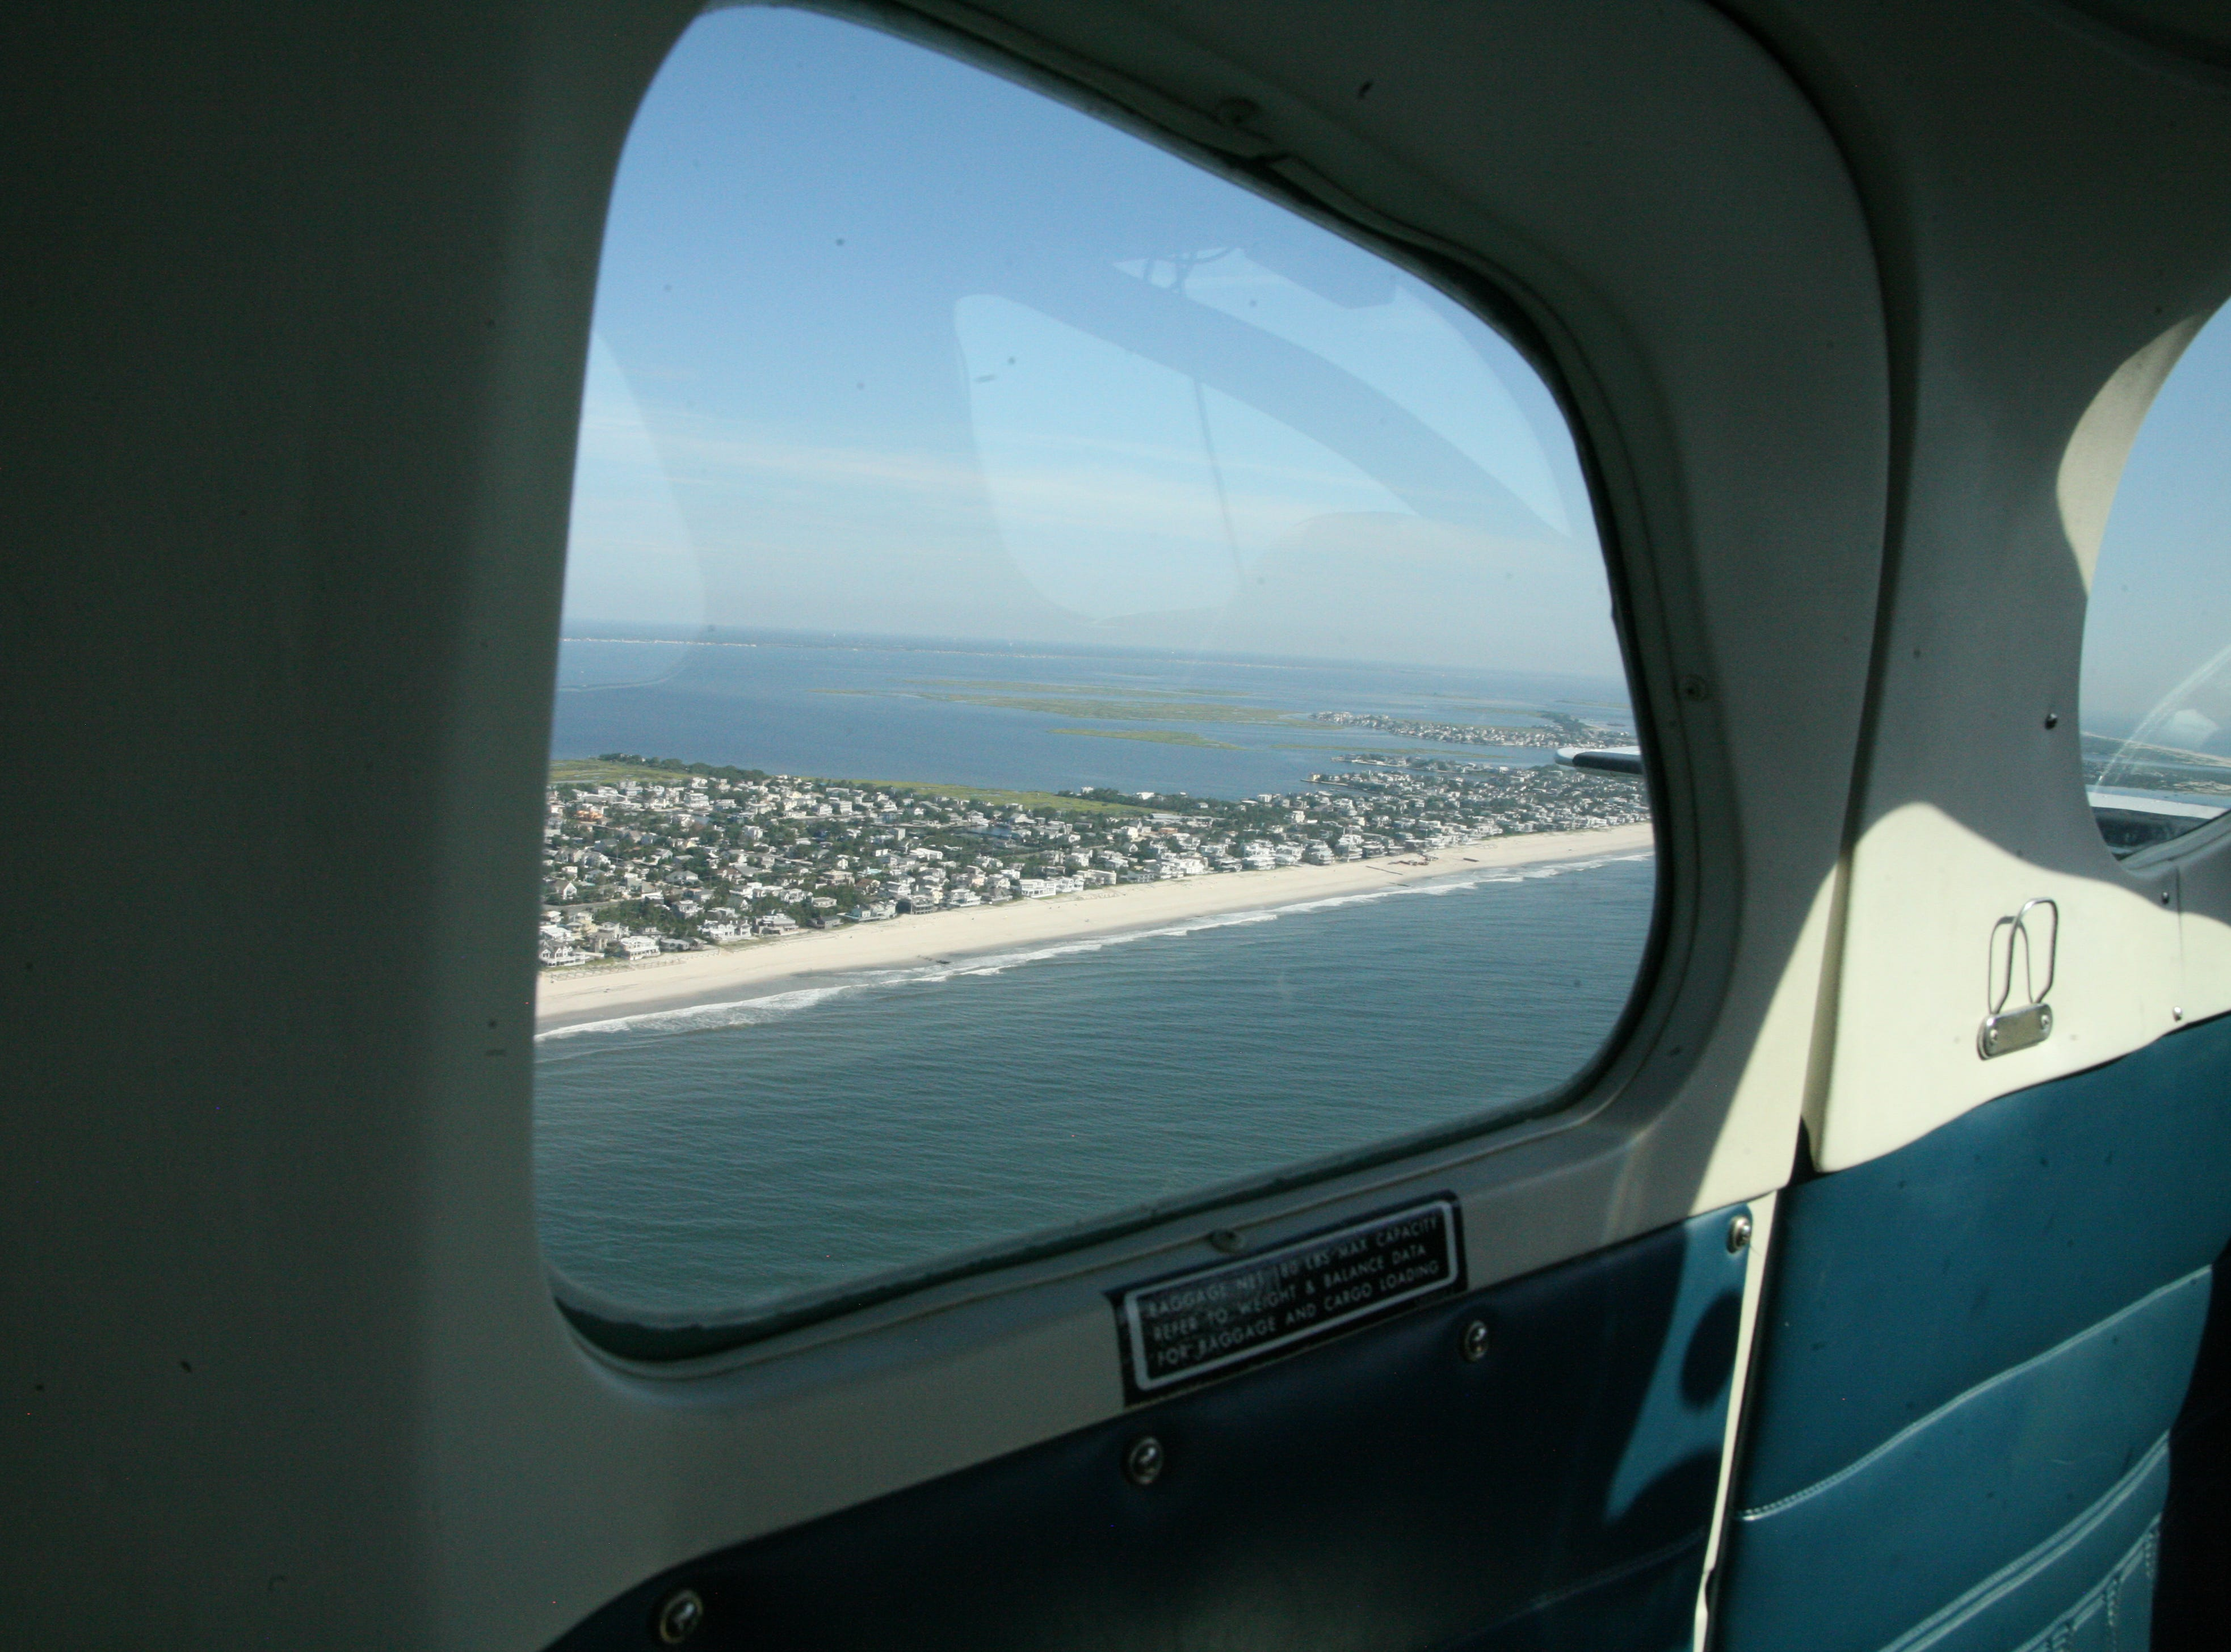 The state Department of Environmental Protection uses a Cessna to make daily aerial surveillance flights along the Jersey Shore looking for oil sheens, floatables or other  water quality hazards.